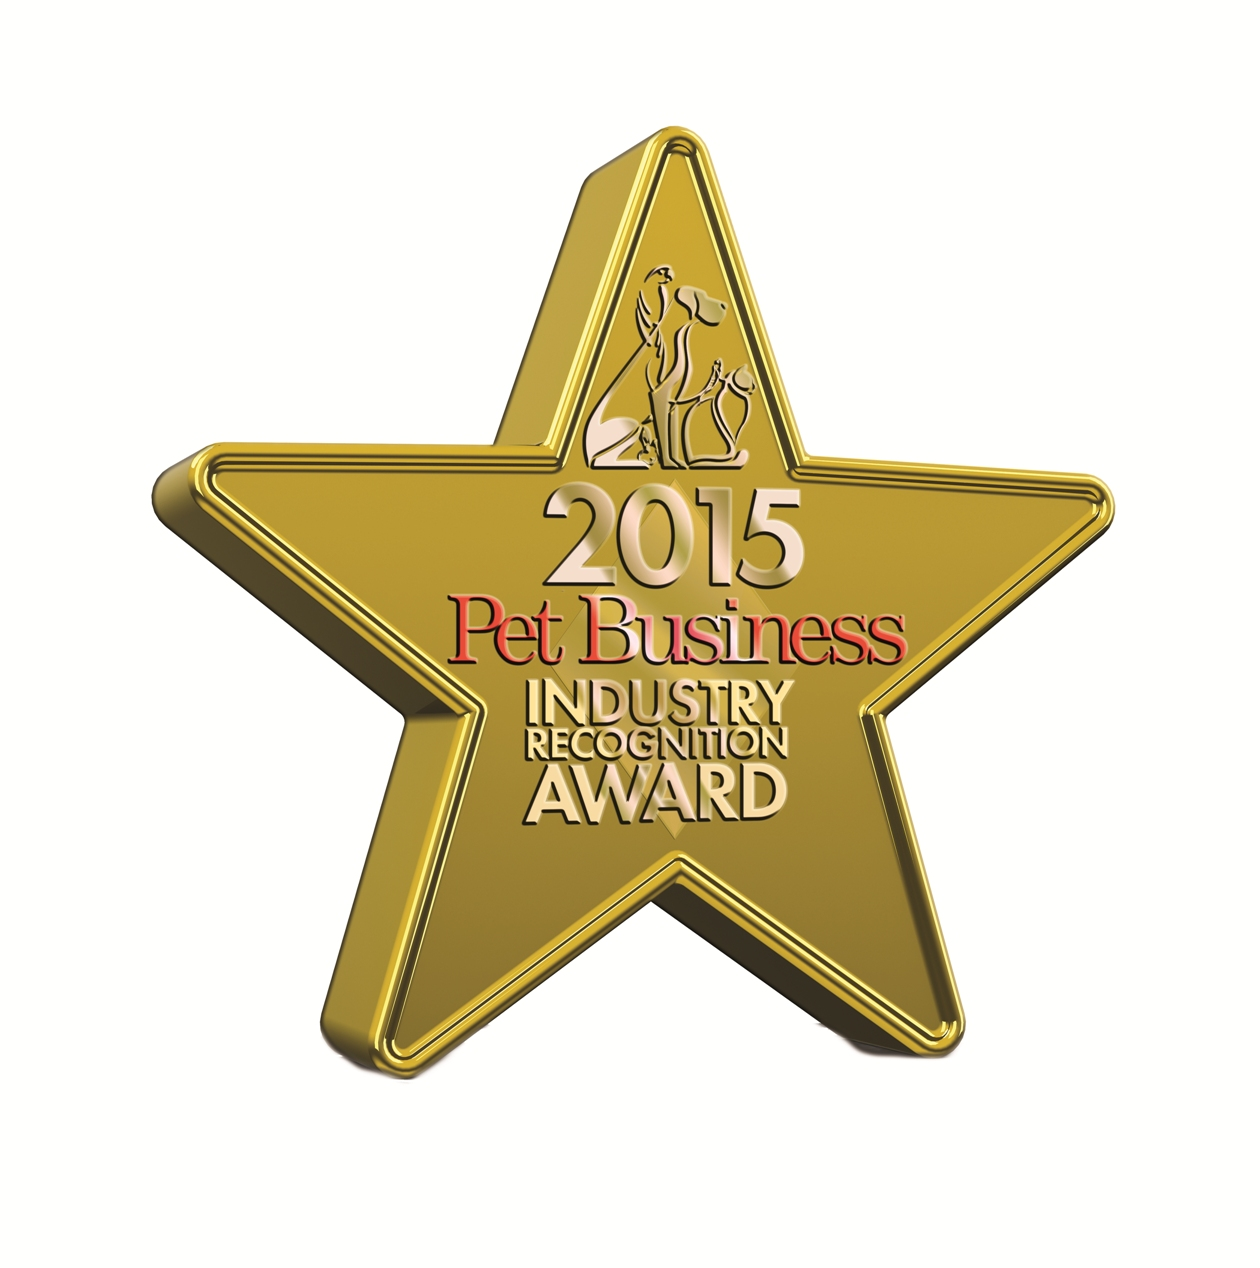 petbusinessaward2015bgcpharnesssm.jpg